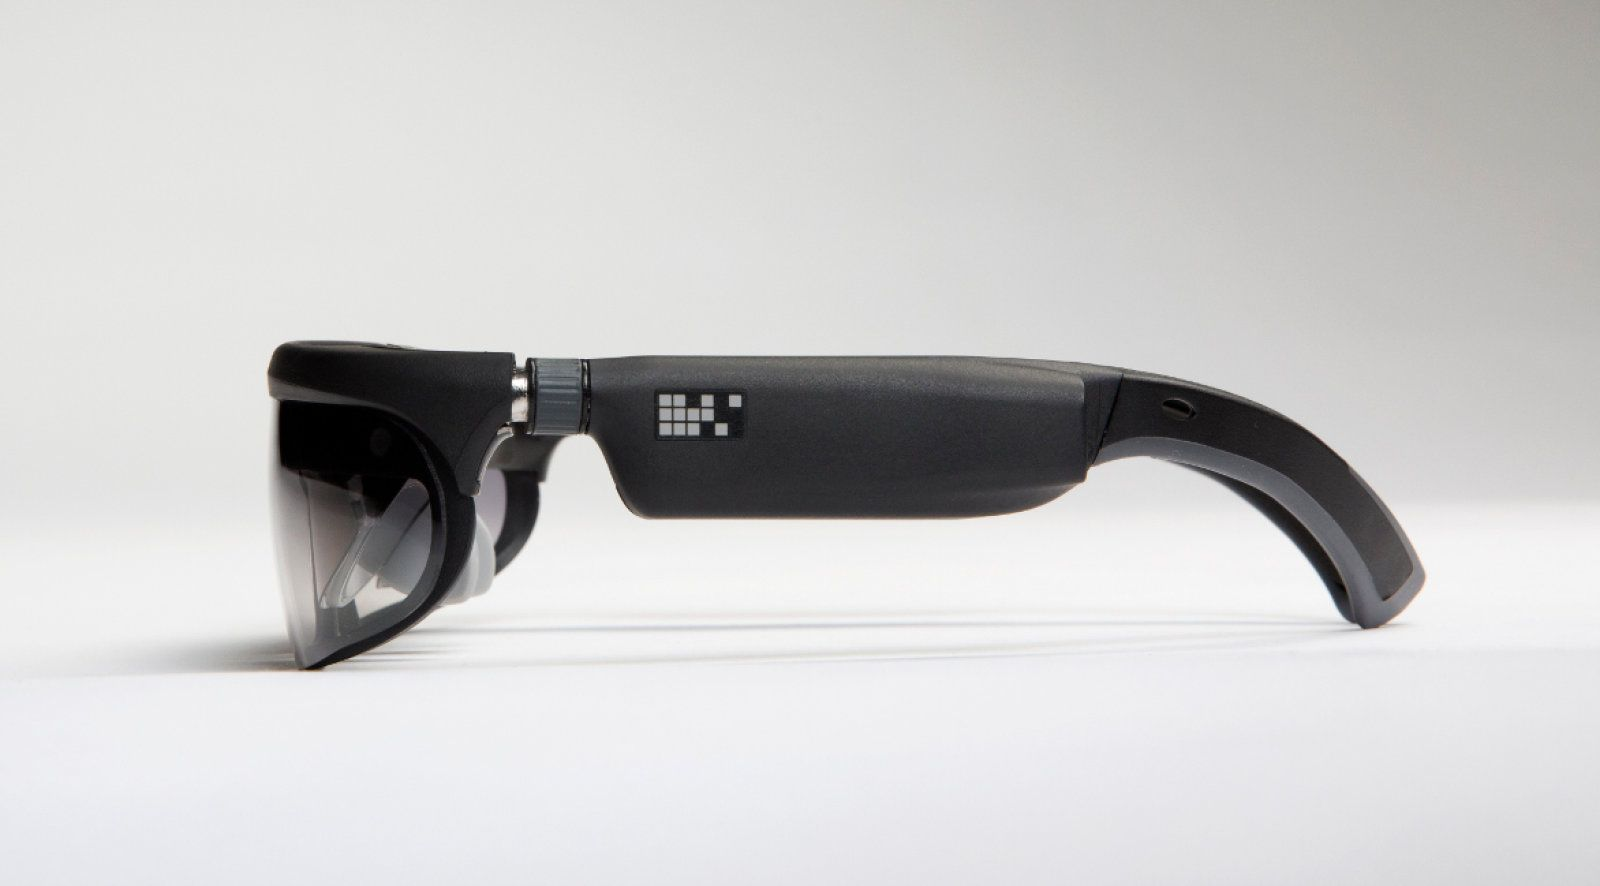 9705e77222 ODG launches its Snapdragon 835-based mixed-reality glasses The company  unveiled two new mixed-reality smartglasses at CES 2017.